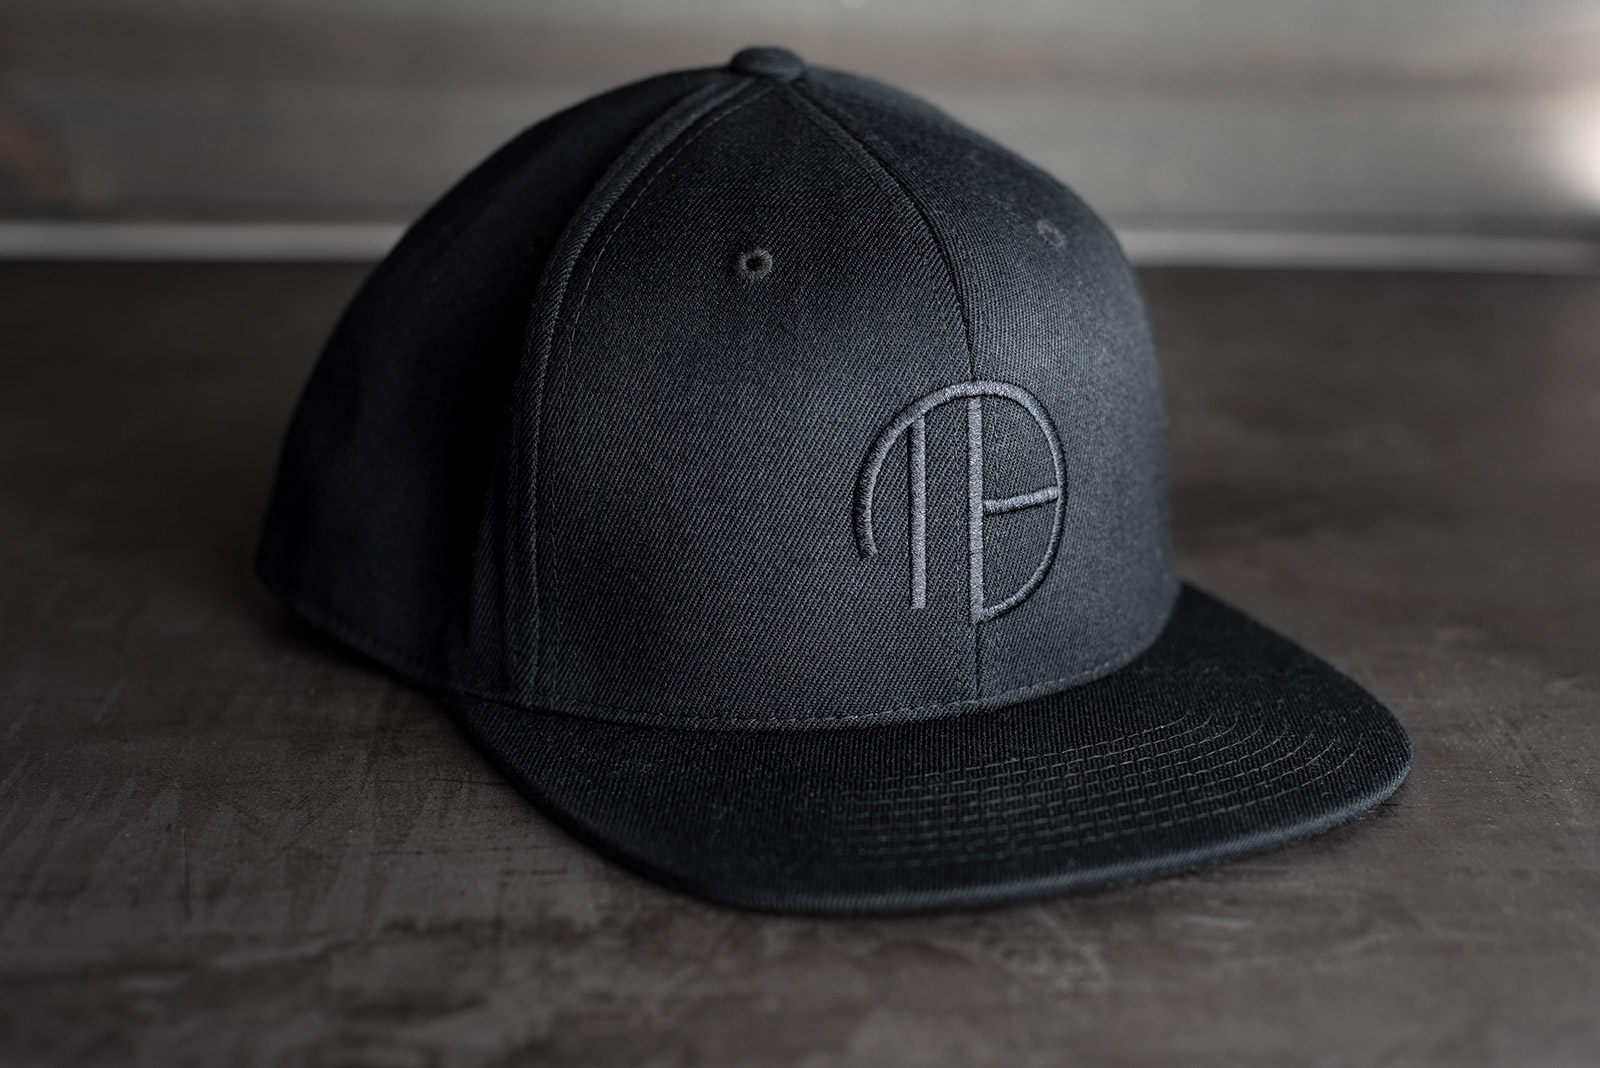 merch-hat-black.jpg